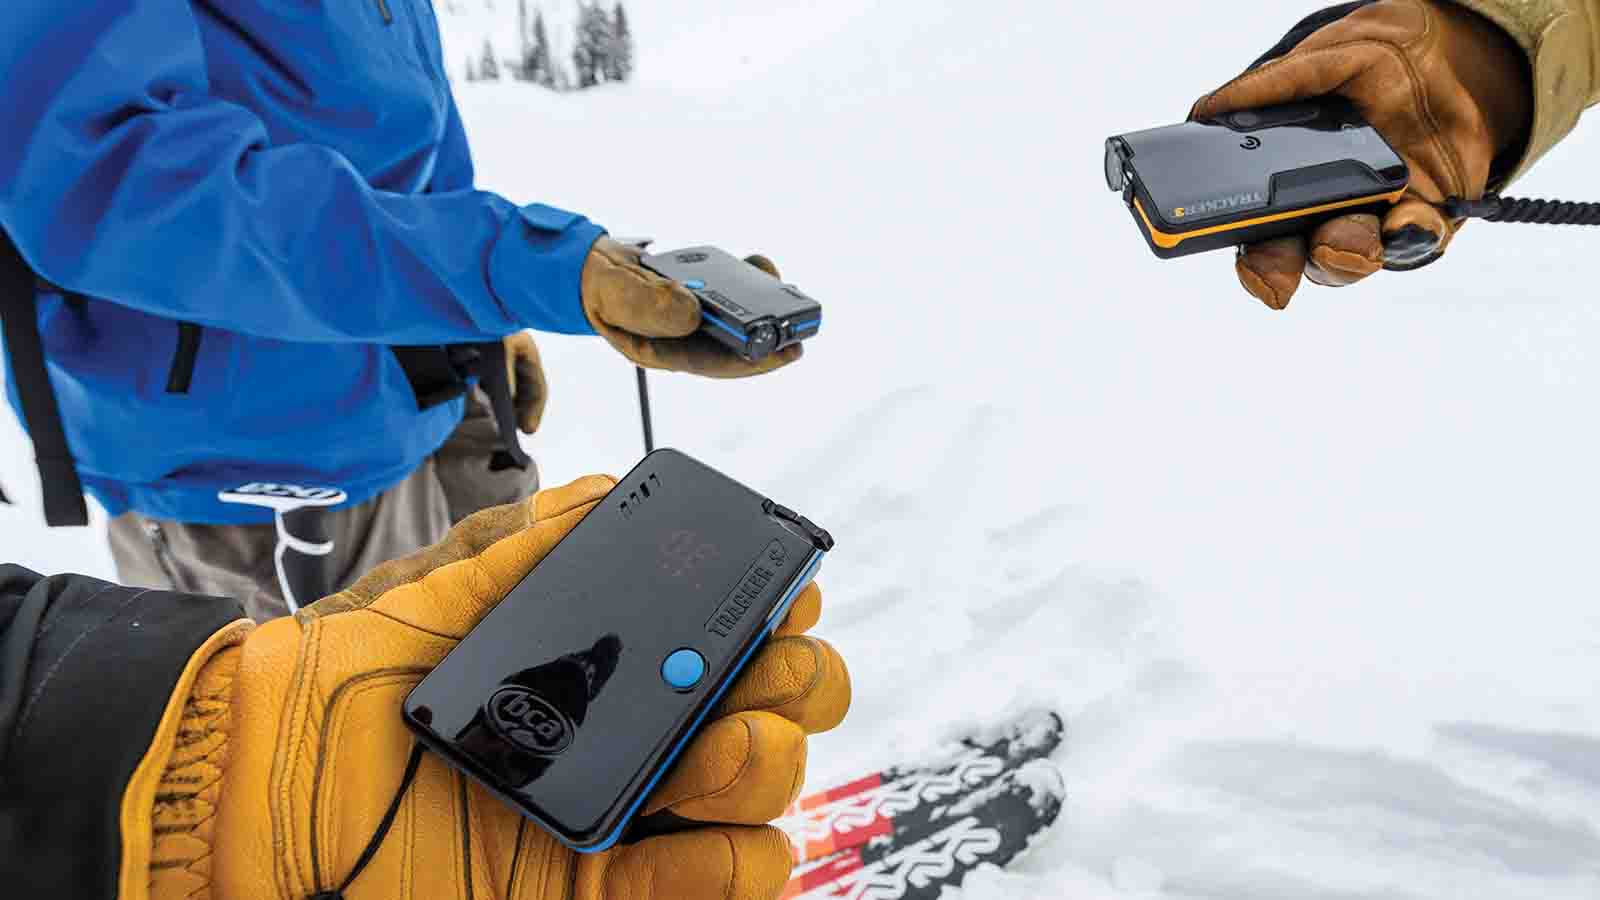 Backcountry Access 21/22 Snow Safety